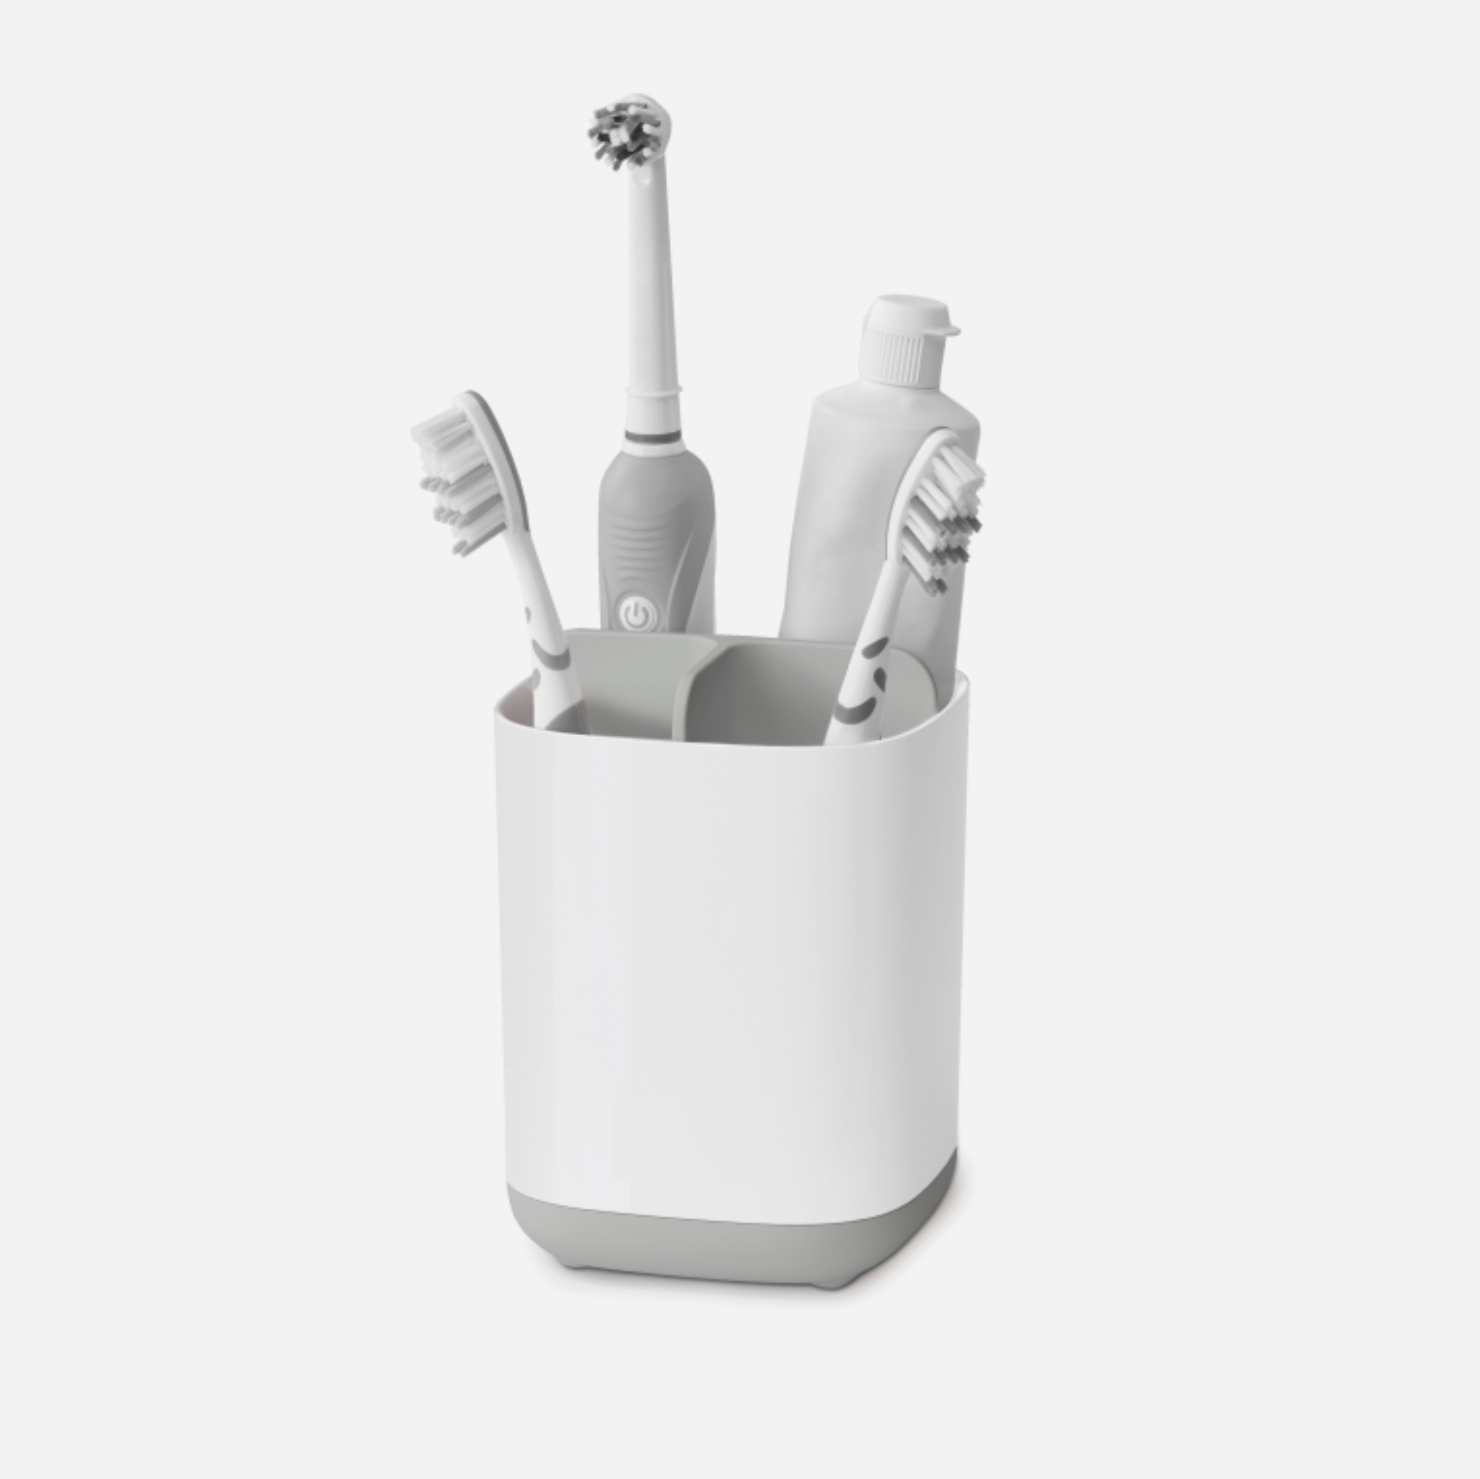 EasyStore Toothbrush Caddy